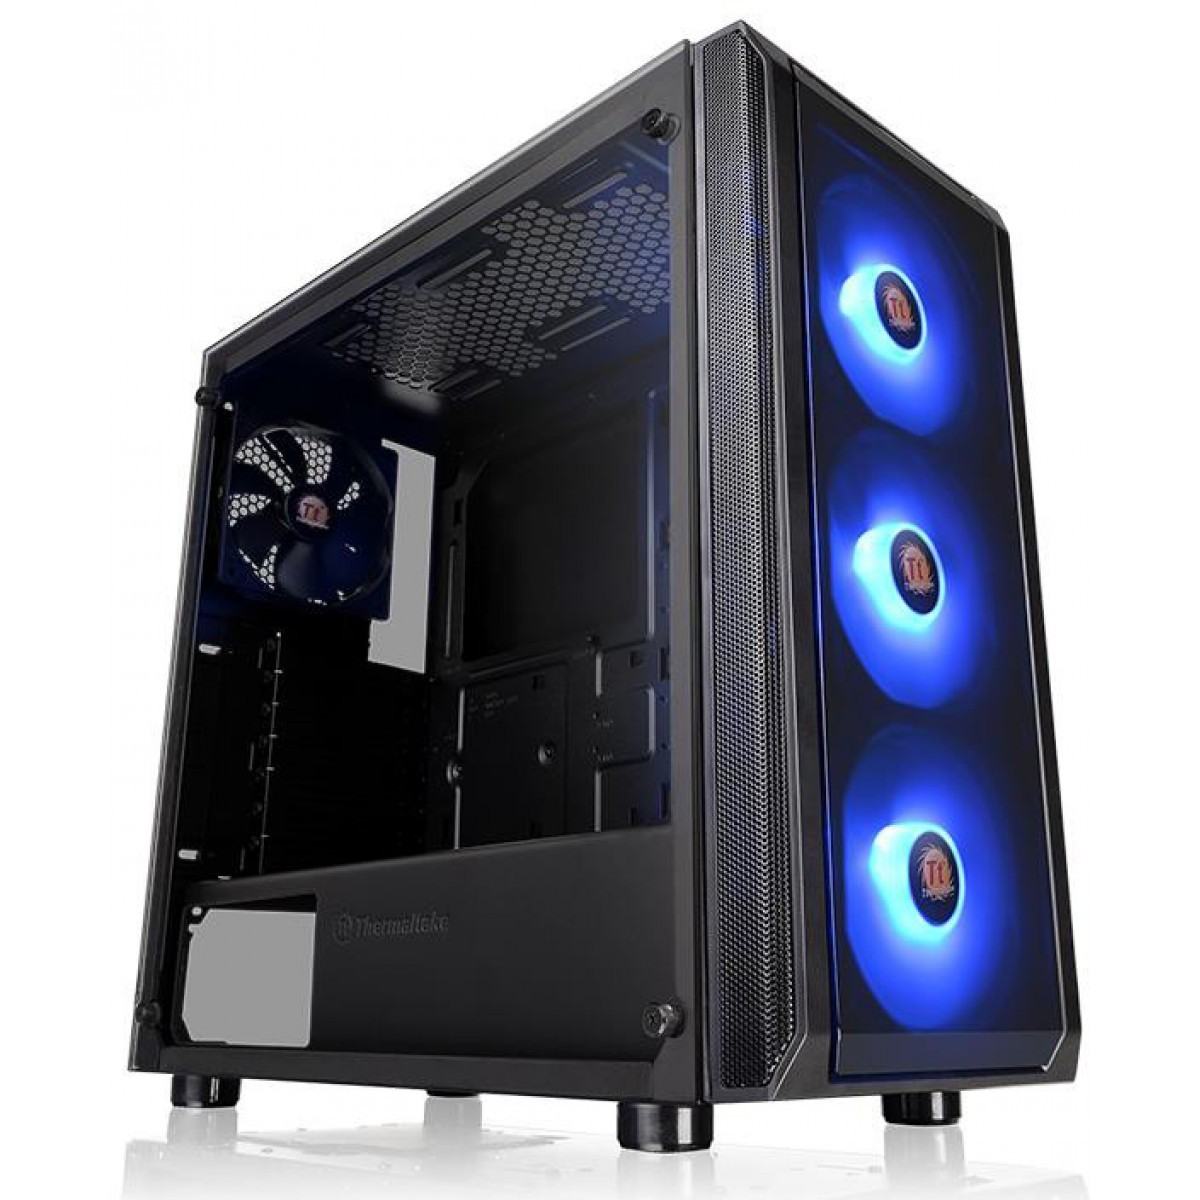 Pc Gamer Tera Edition AMD Ryzen 7 3700X / GeForce RTX 2080 Super / DDR4 8GB / HD 1TB / 600W